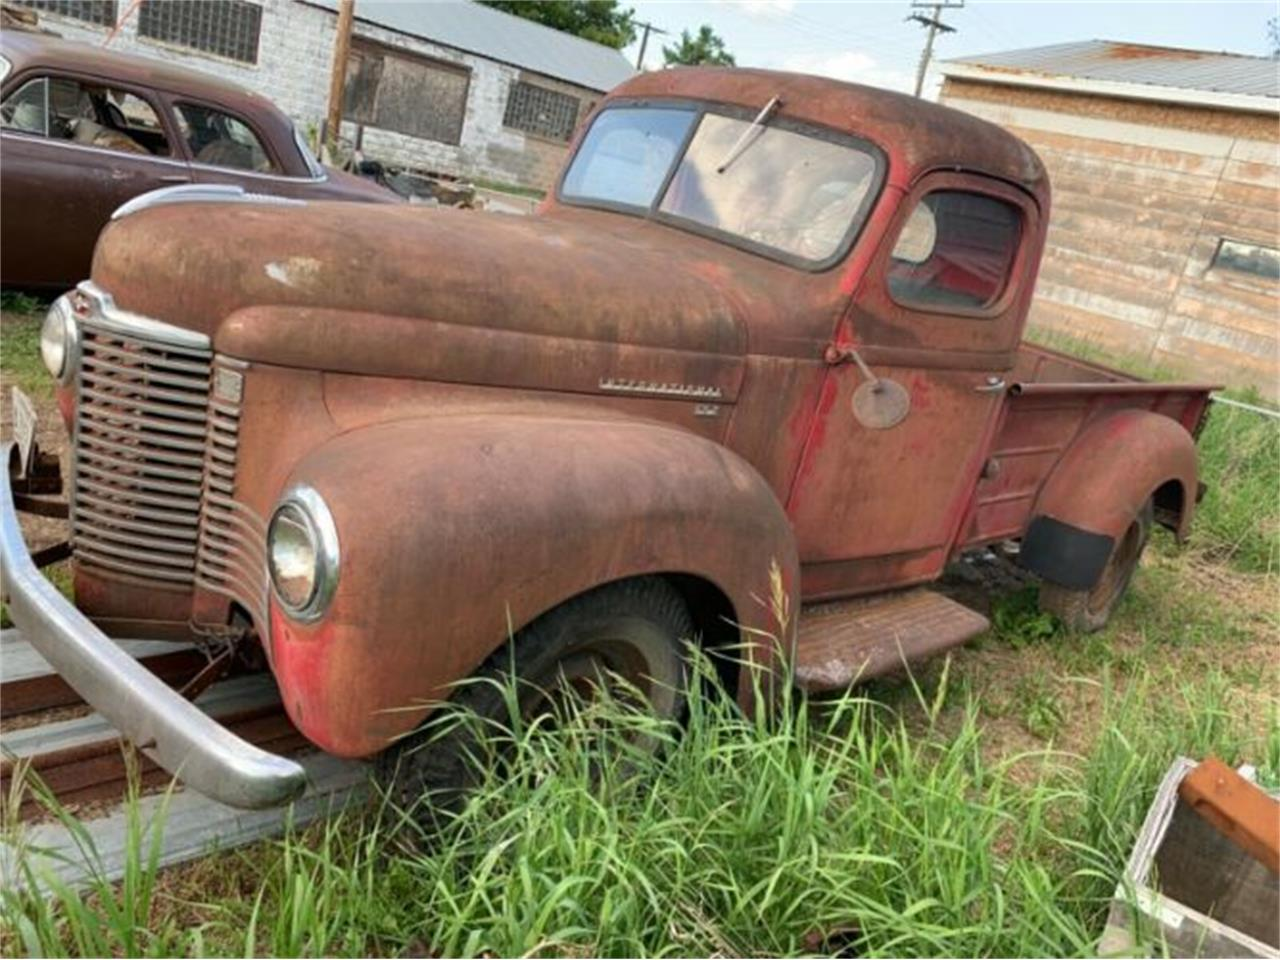 For Sale: 1949 International Harvester in Cadillac, Michigan